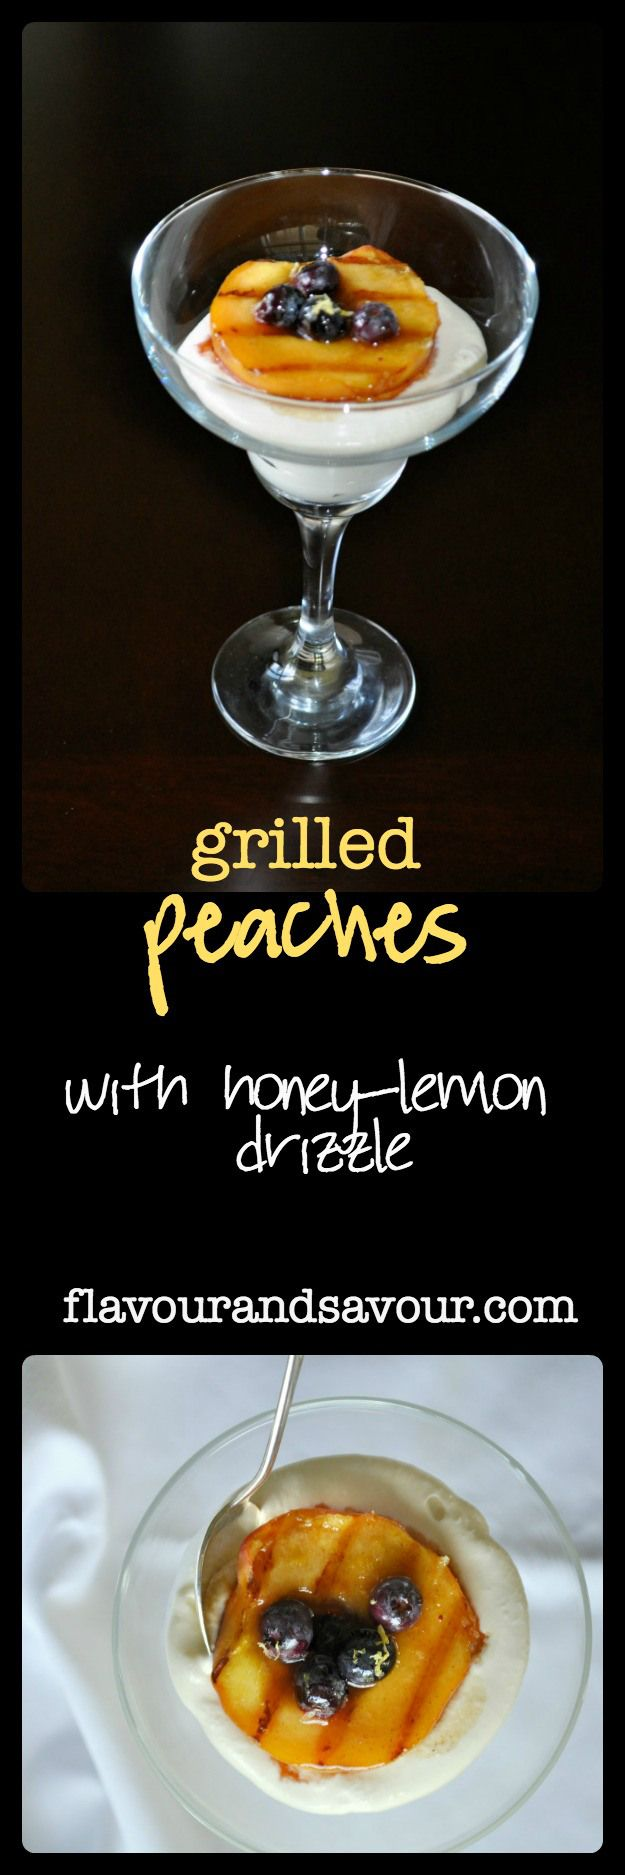 Grilled Peaches with honey-lemon drizzle. Decadent, delicious, but quick and easy. Serve with whipped cream or keep it dairy-free with whipped coconut milk.